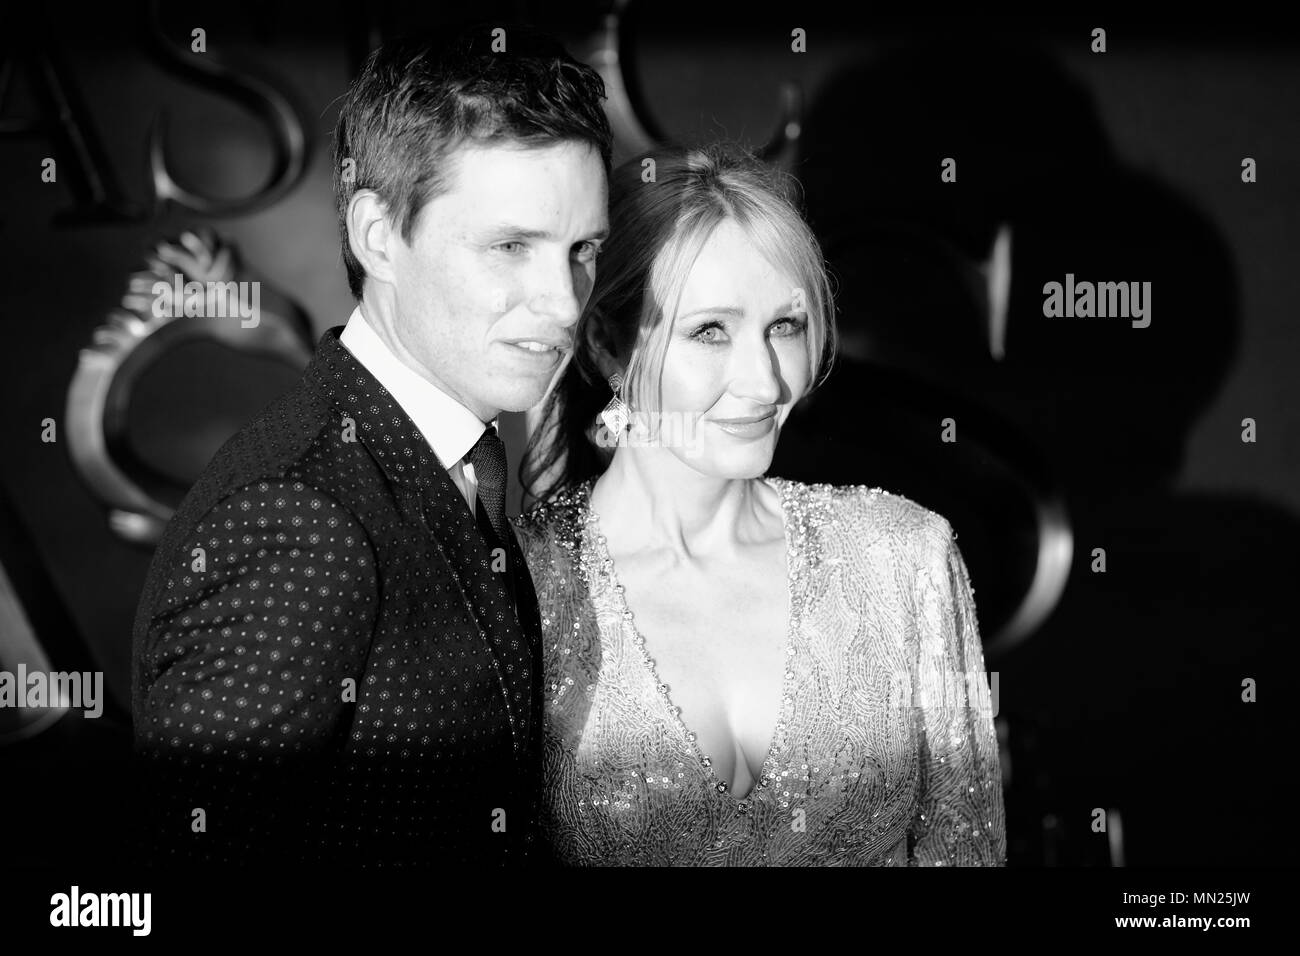 LONDON, ENGLAND - NOVEMBER 15: (Editors Note: Image Converted to Black and White) Eddie Redmayne and J. K. Rowling attend the European premiere of 'Fantastic Beasts And Where To Find Them' at Odeon Leicester Square on November 15, 2016 in London, England. - Stock Image